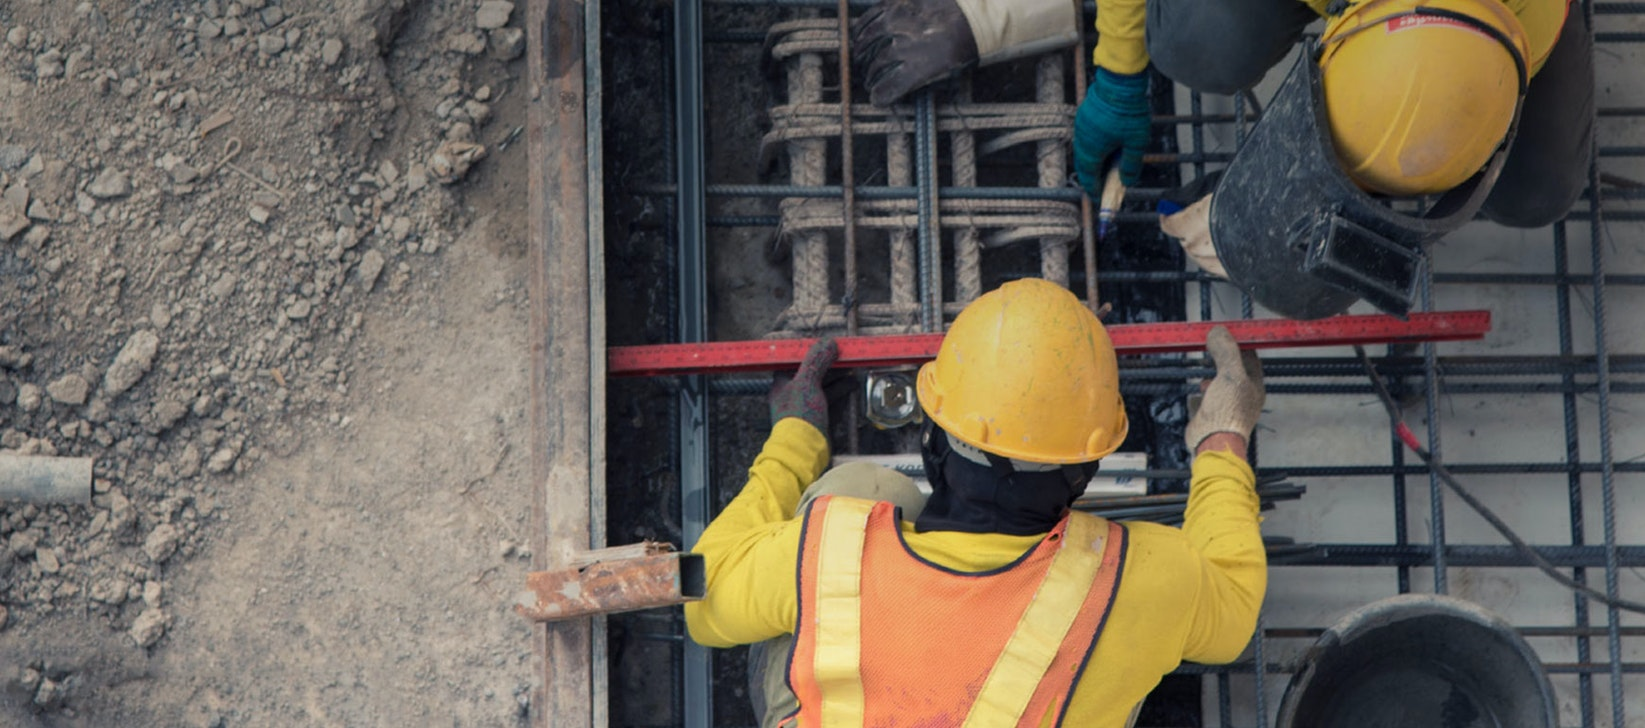 Construction sector provides employment boost in early 2018